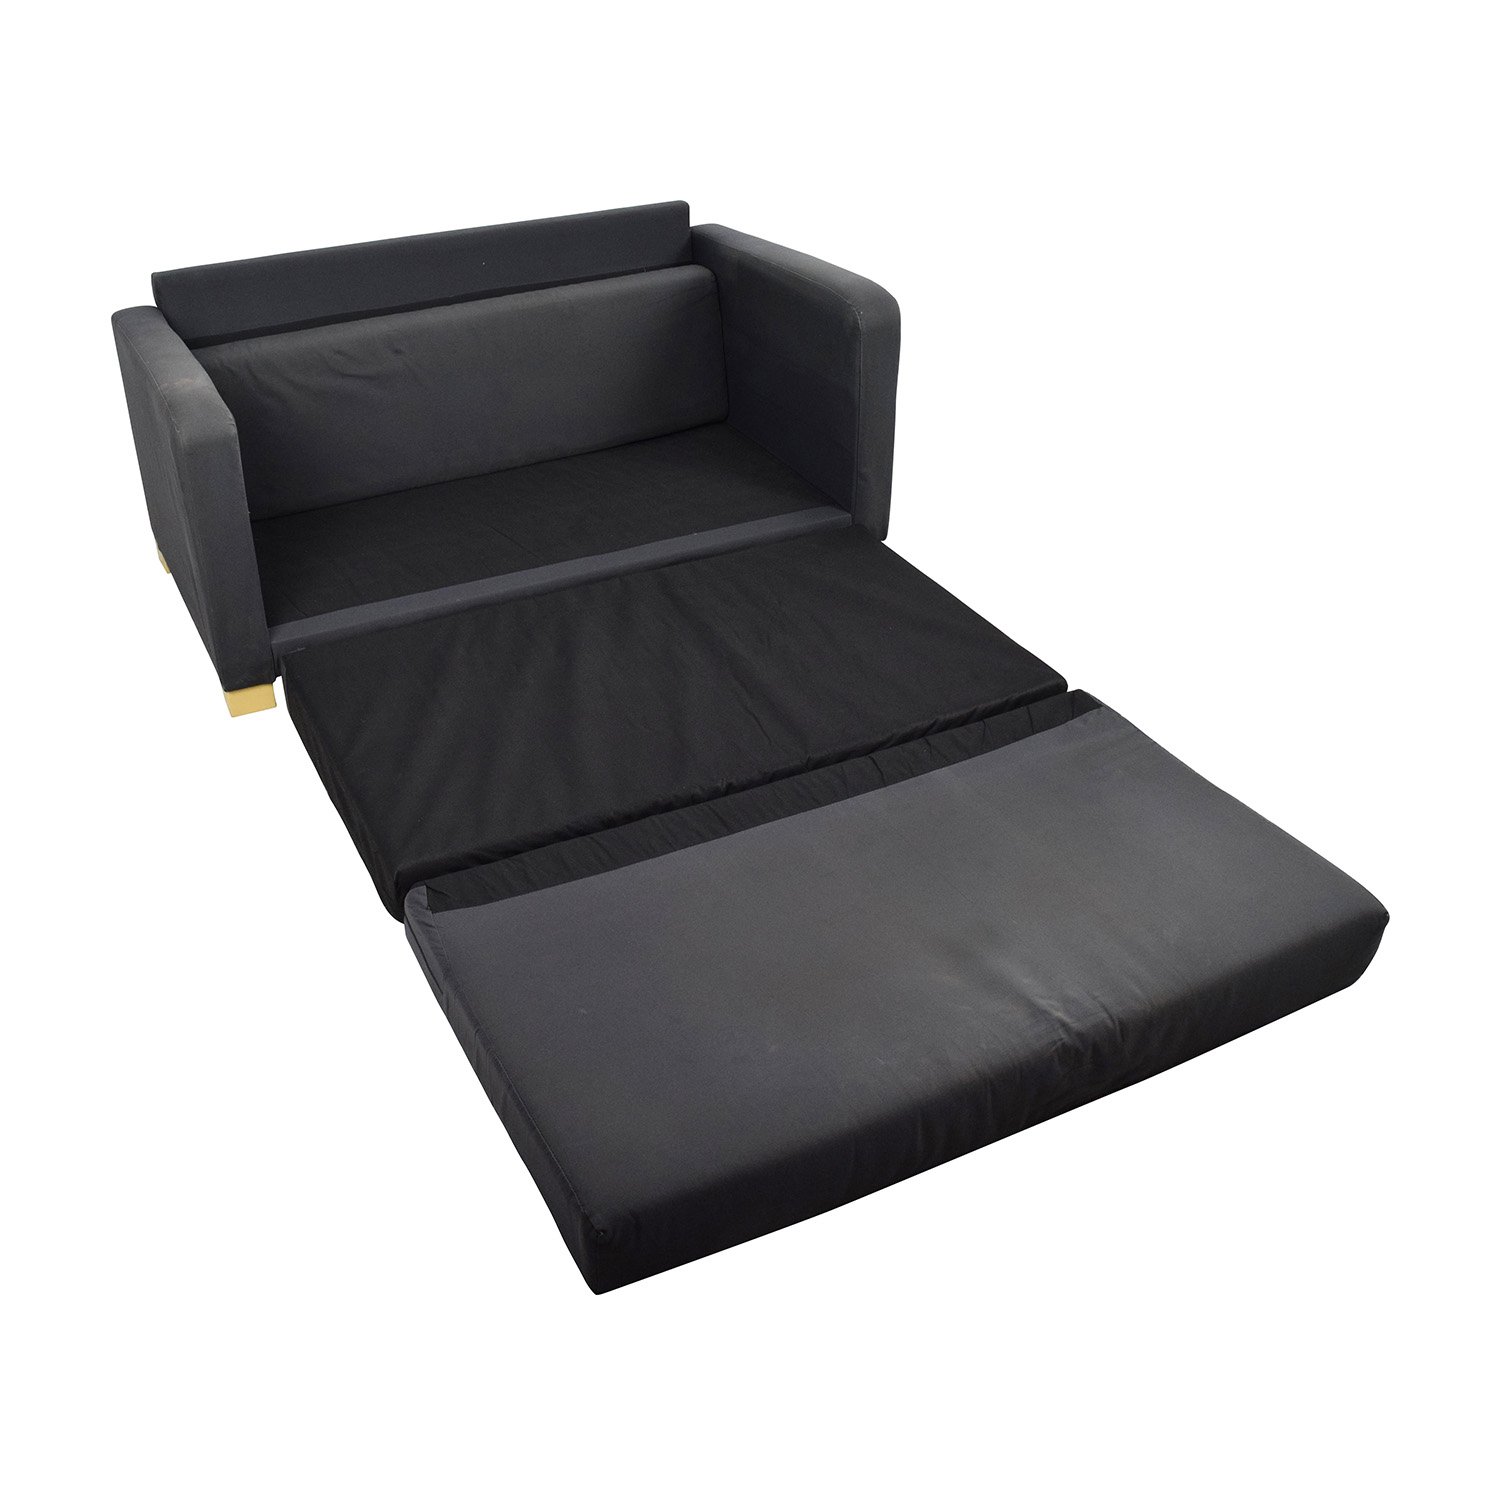 68% OFF - IKEA IKEA Convertible Loveseat / Sofas